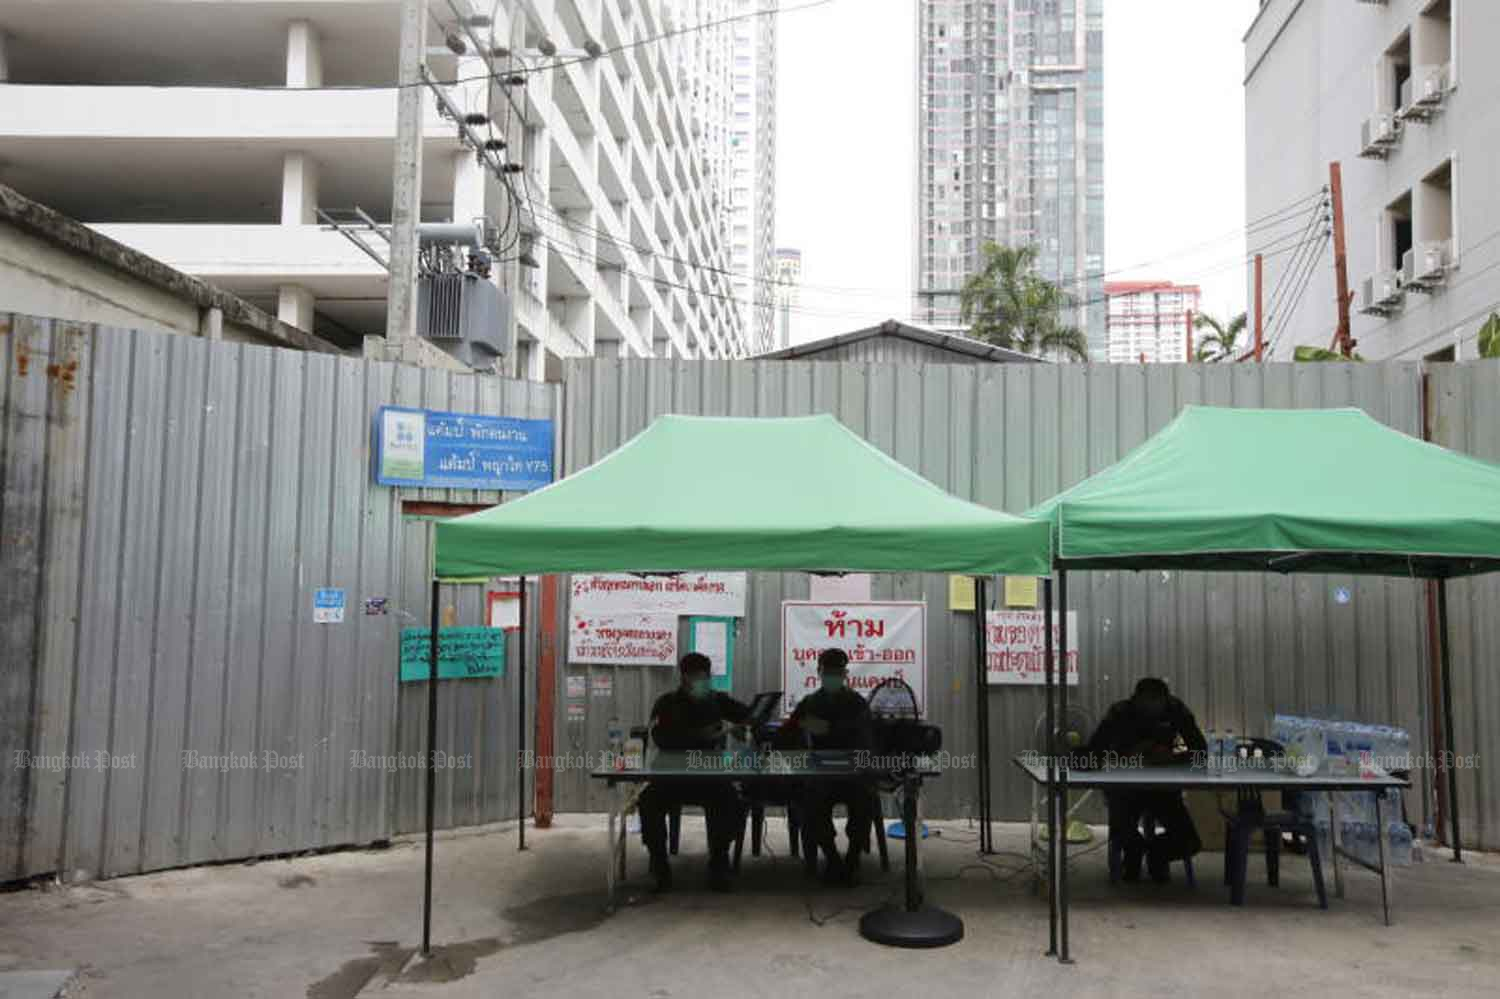 A construction site in Bangkok was ordered closed for one month from late last month to control Covid-19. The closure prompted many migrant workers to leave for their homeland. (Photo: Wichan Charoenkiatpakul)